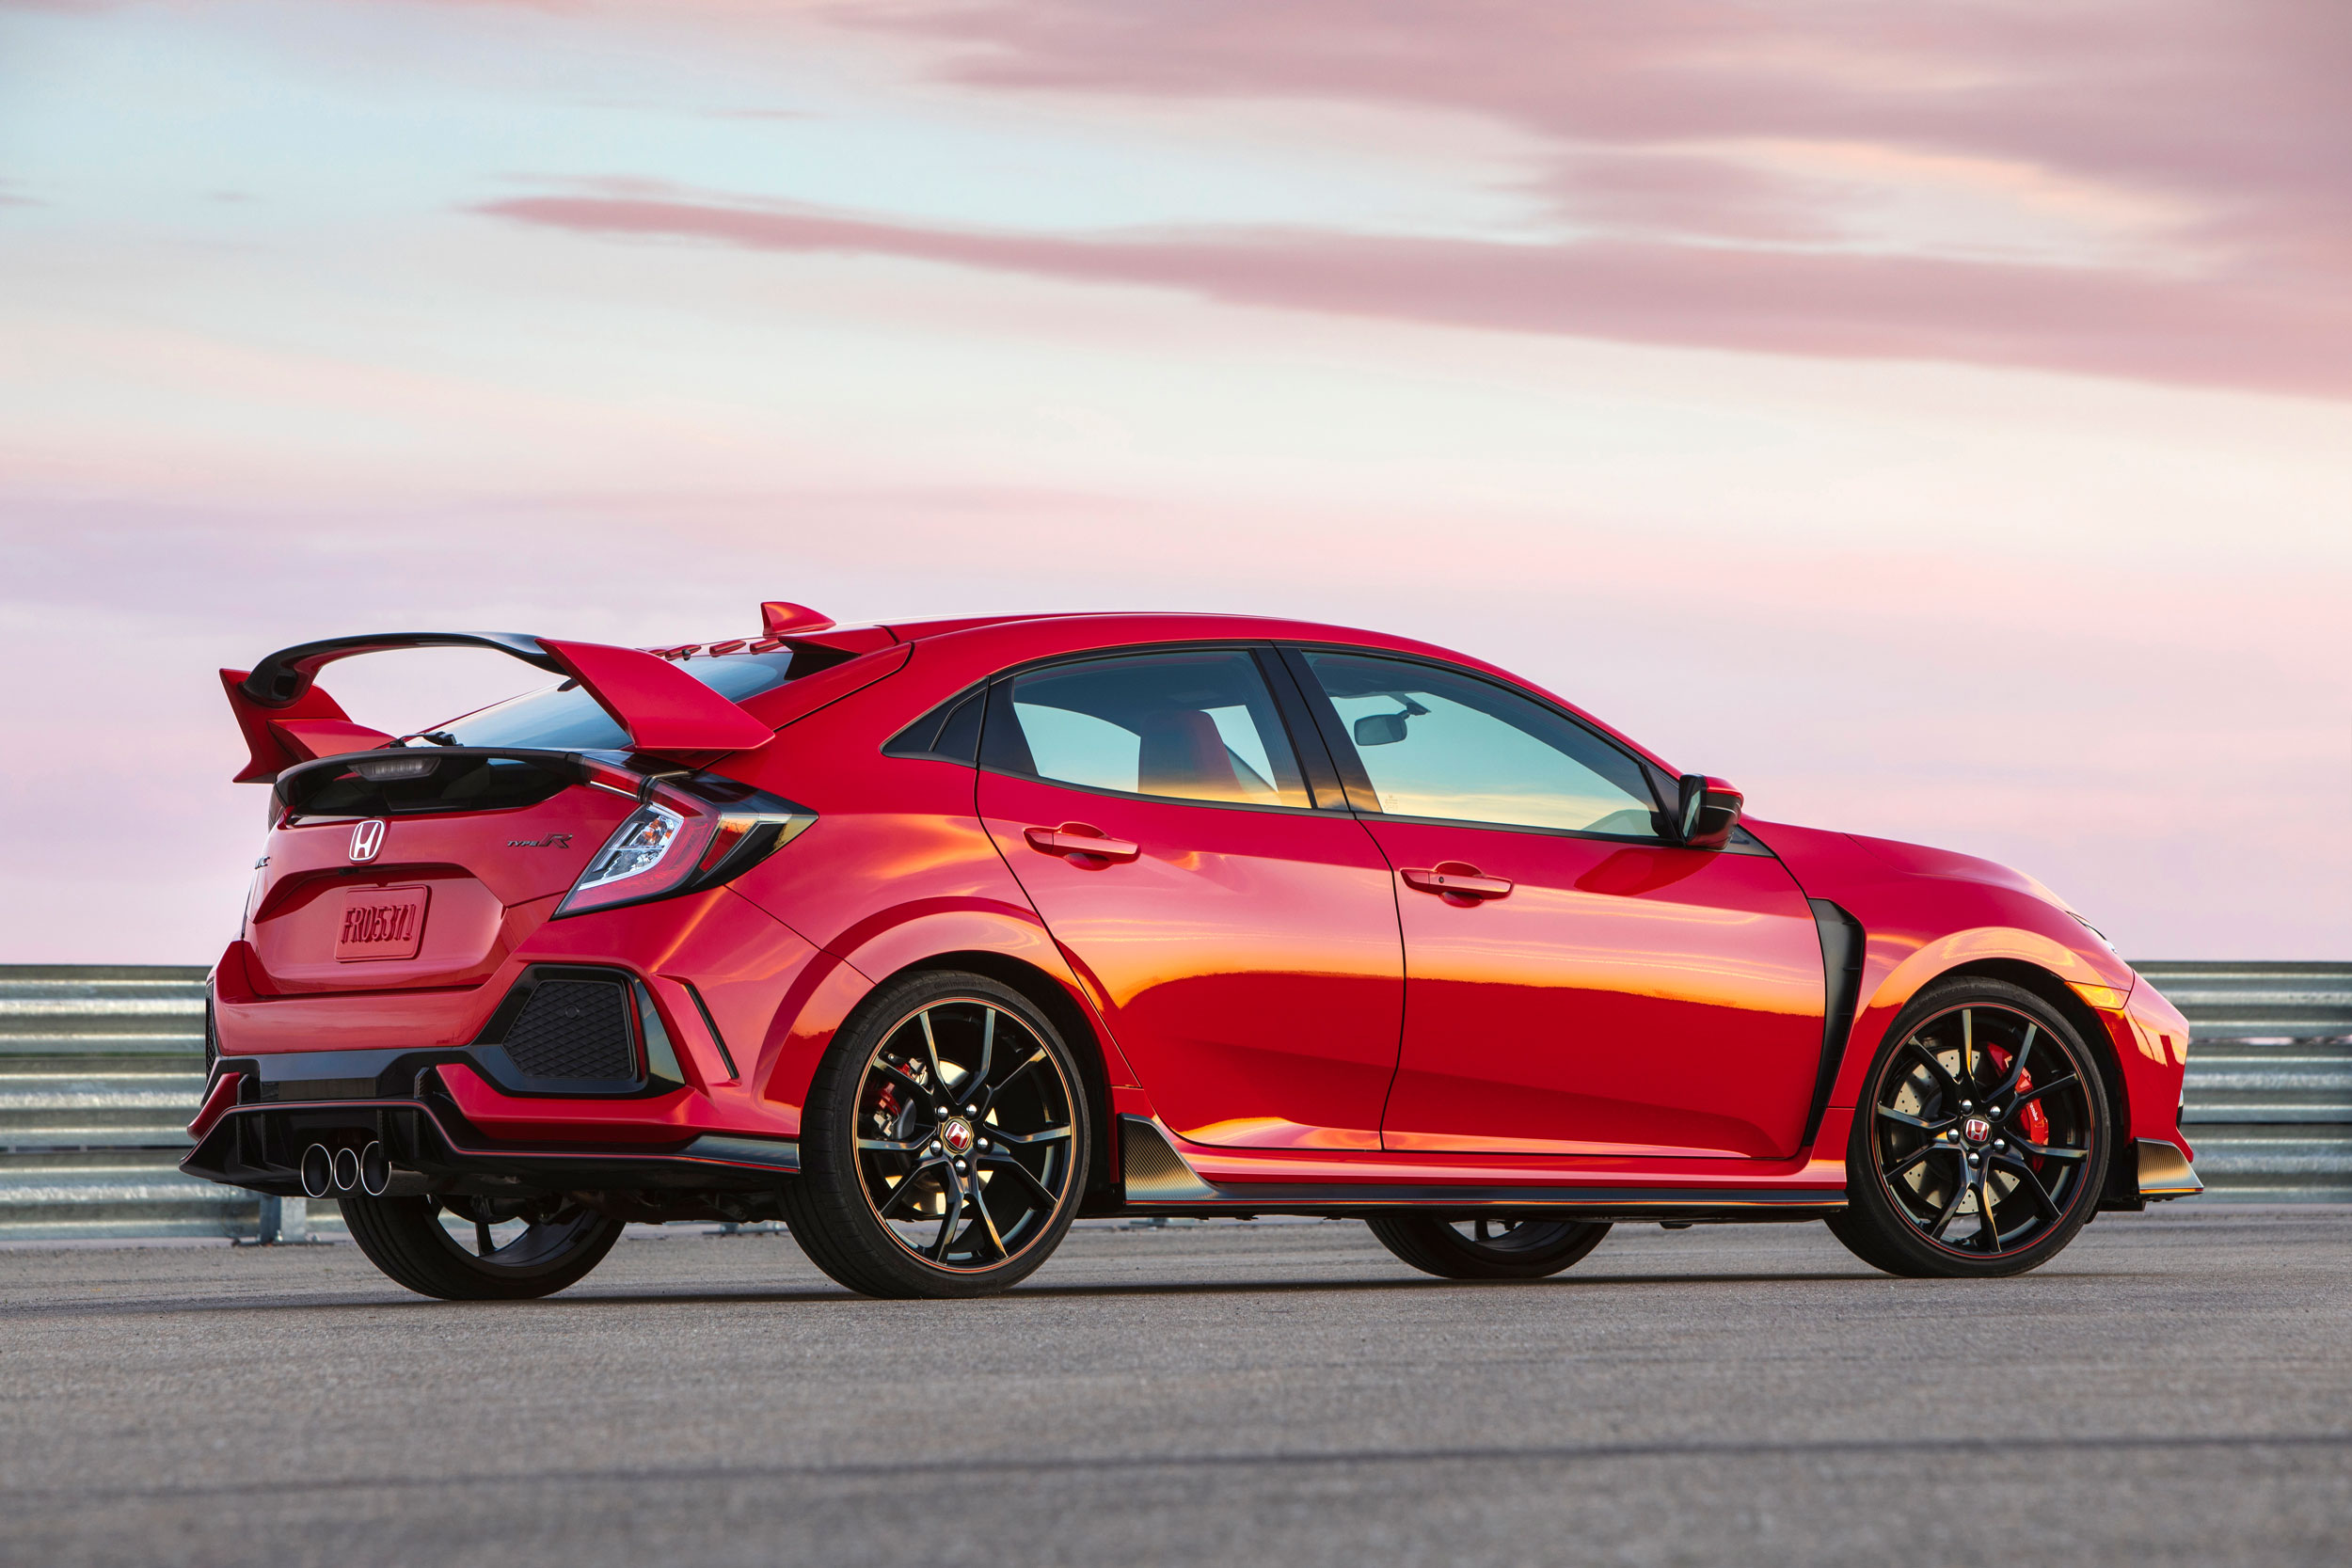 2019 Honda Civic Type-R rear 3/4